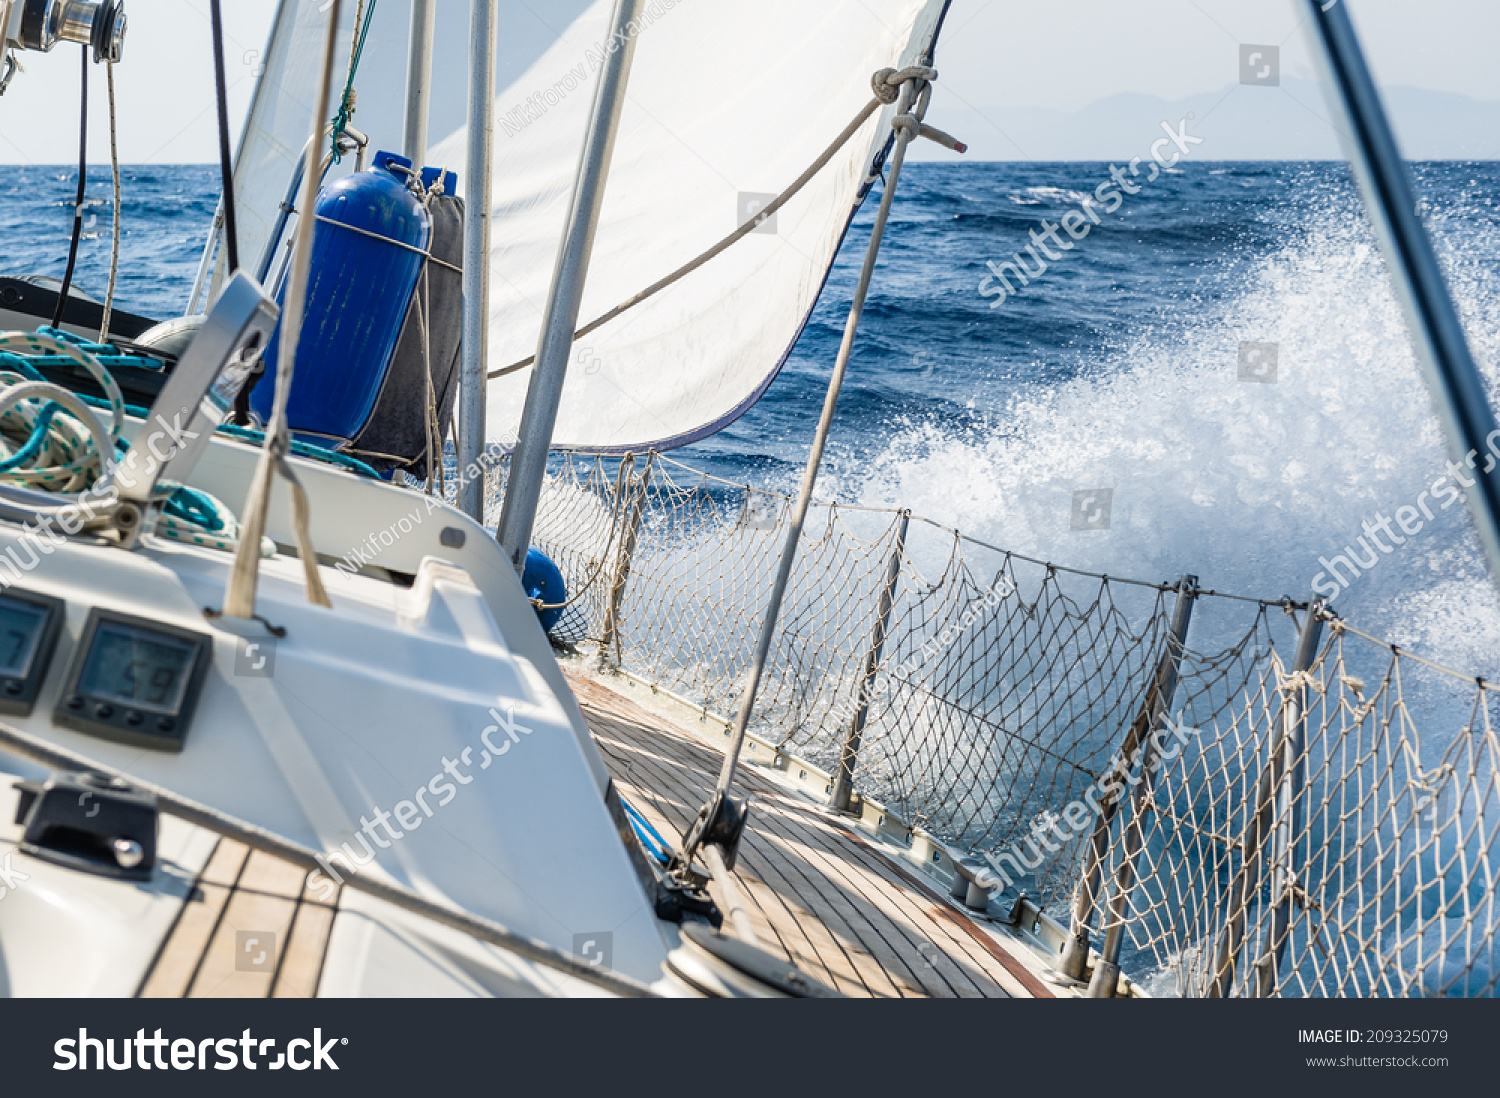 stock-photo-fast-sailing-cruising-yacht-at-heeling-with-splash-209325079